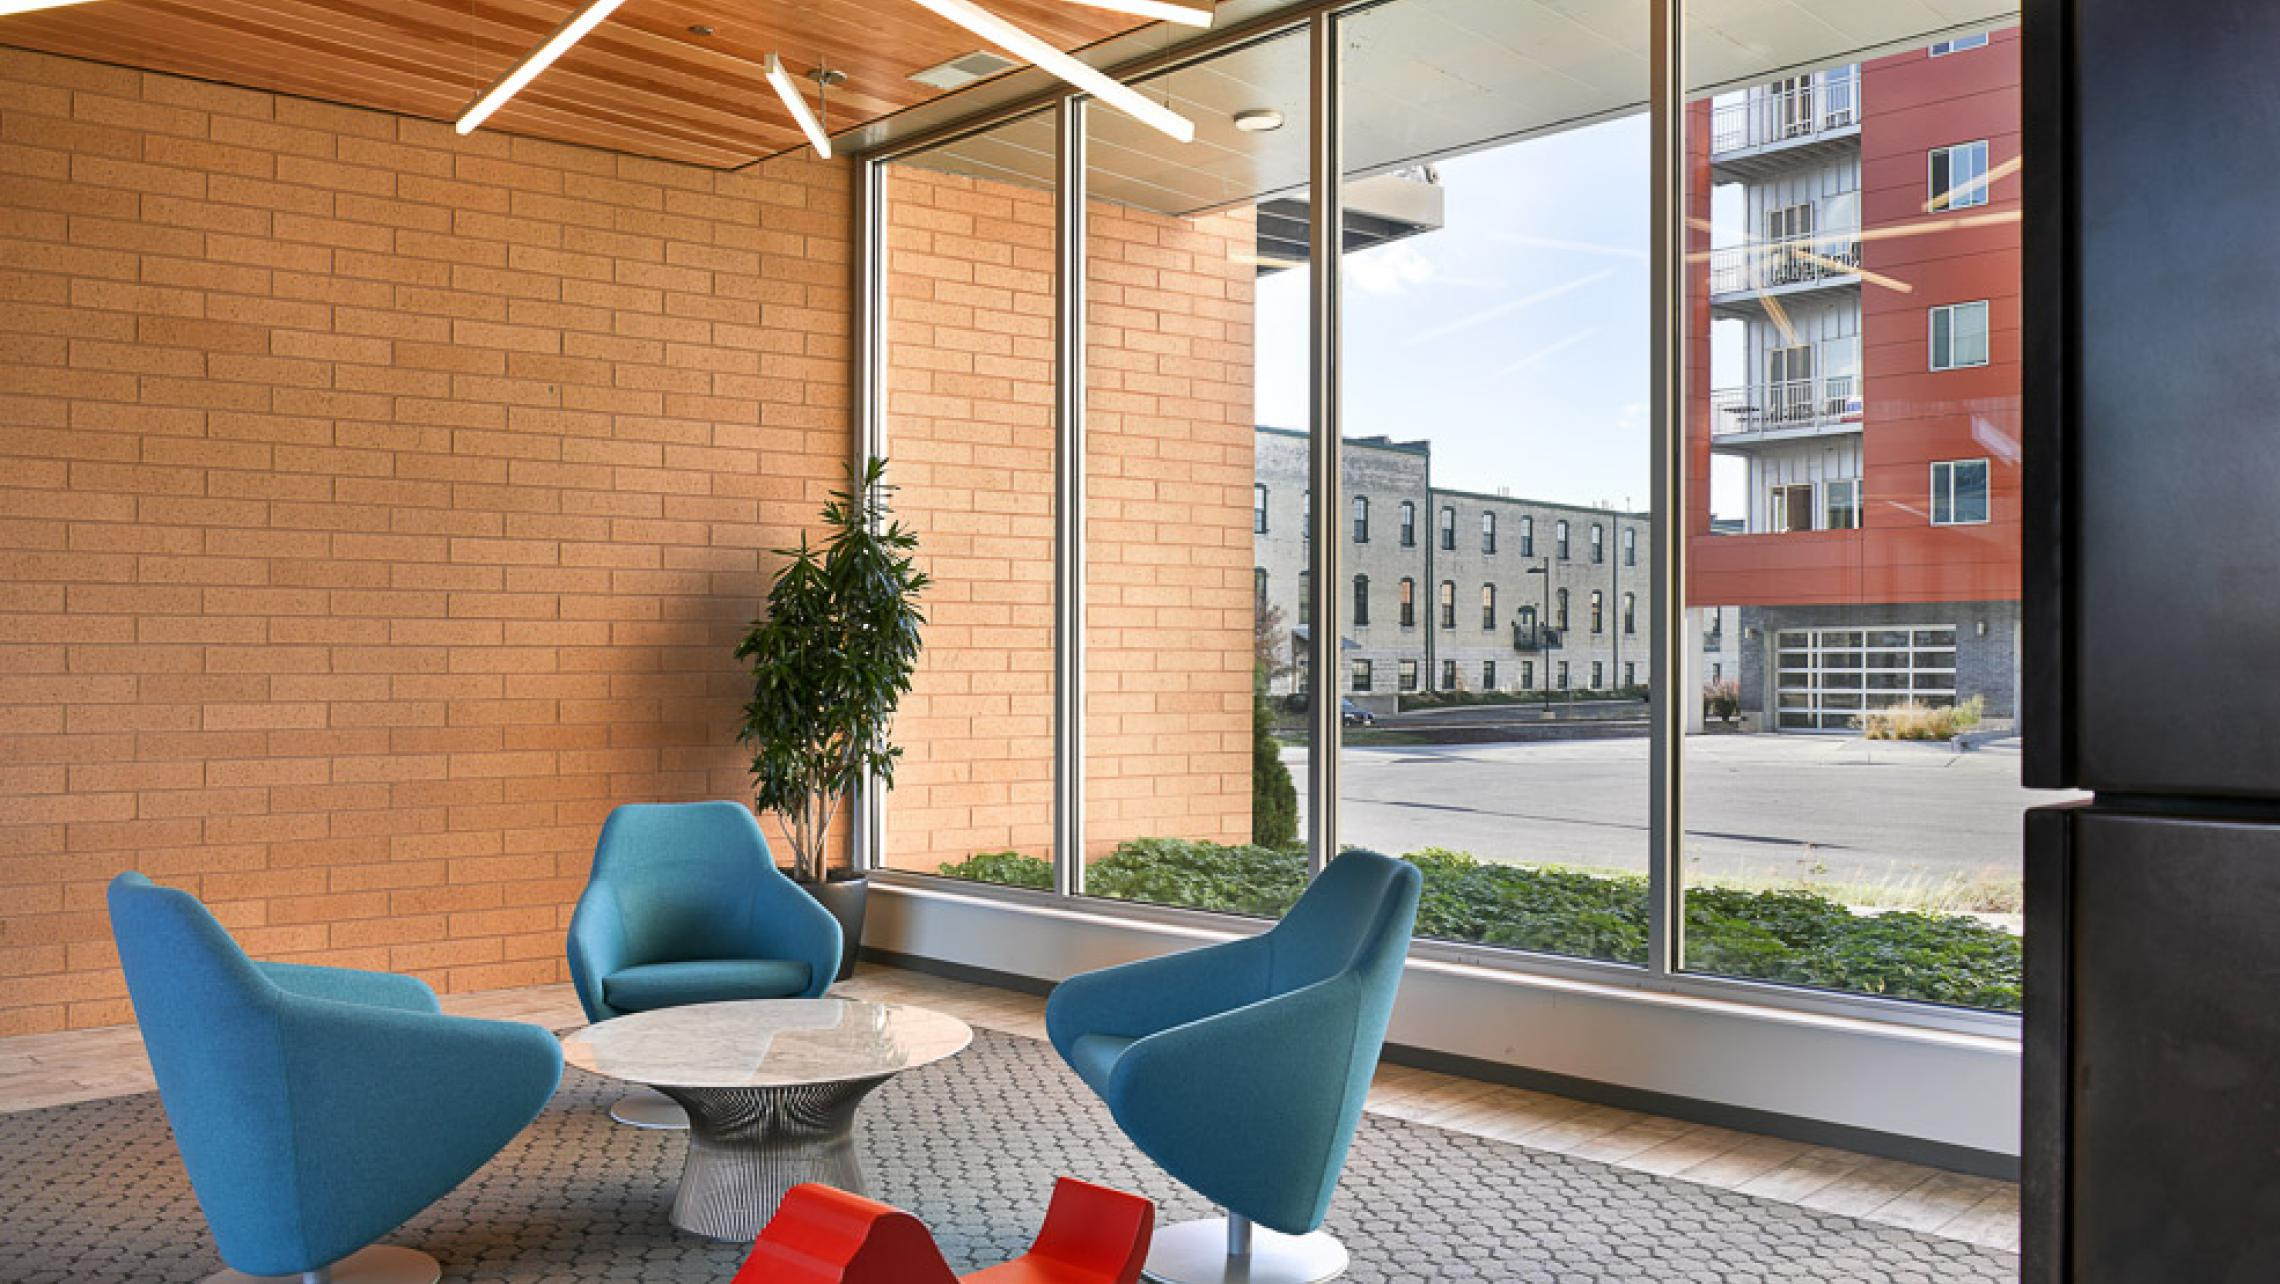 ULI Nine Line Apartments - Seating with Lighting Inspired by Nine Lines